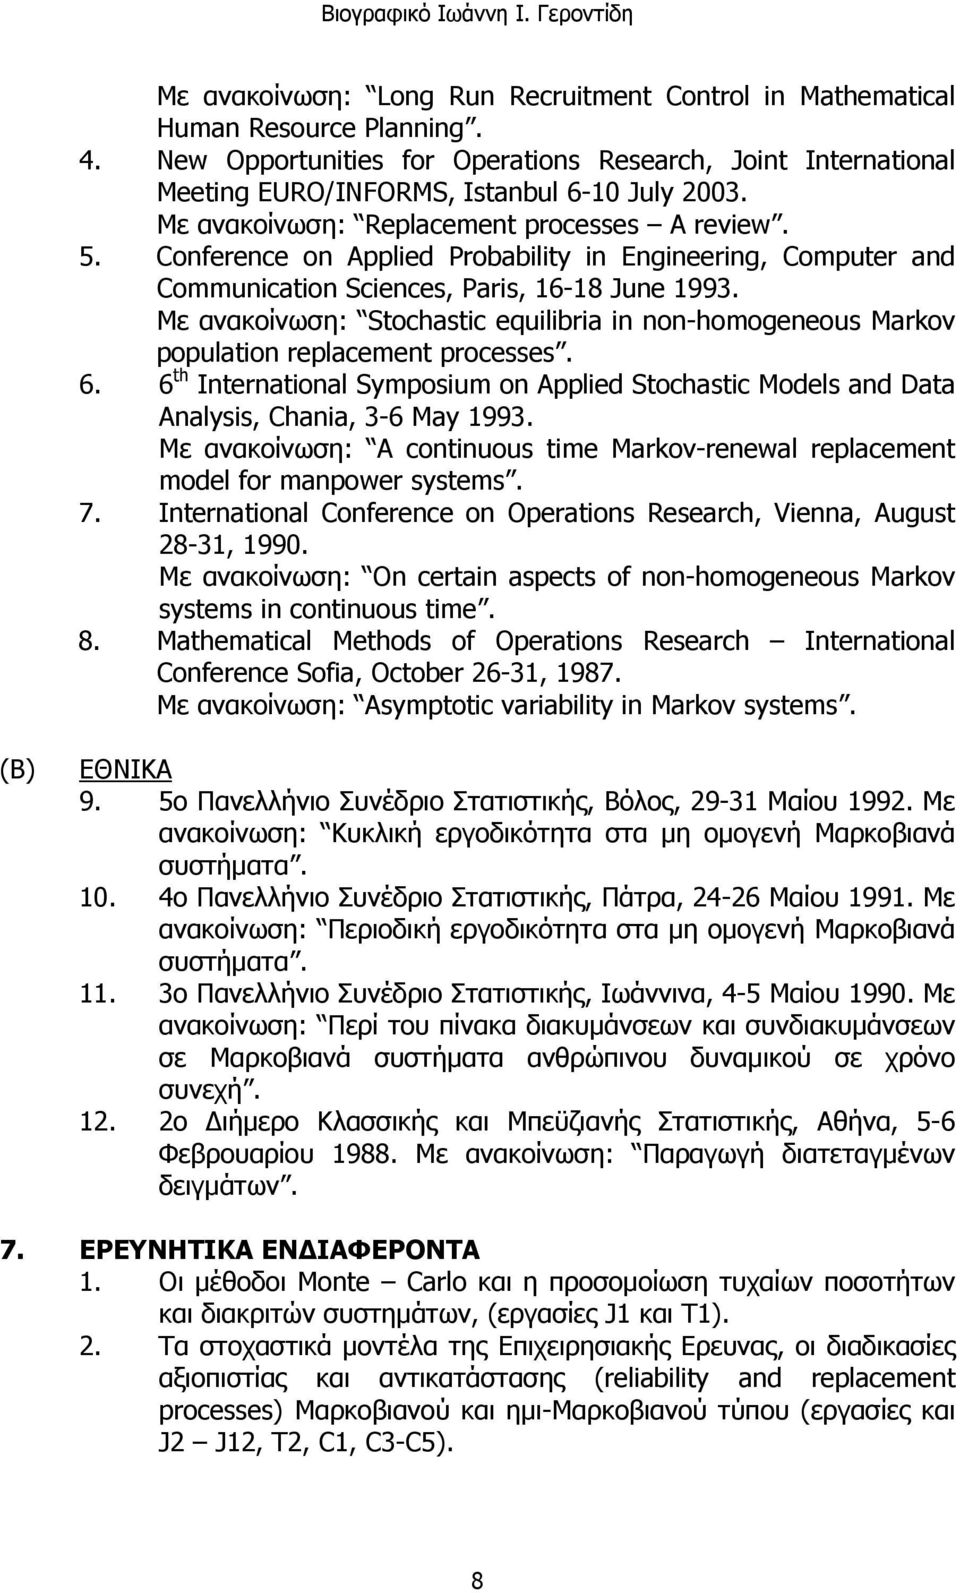 Με ανακοίνωση: Stochastic equilibria in non-homogeneous Markov population replacement processes. 6. 6 th International Symposium on Applied Stochastic Models and Data Analysis, Chania, 3-6 May 1993.